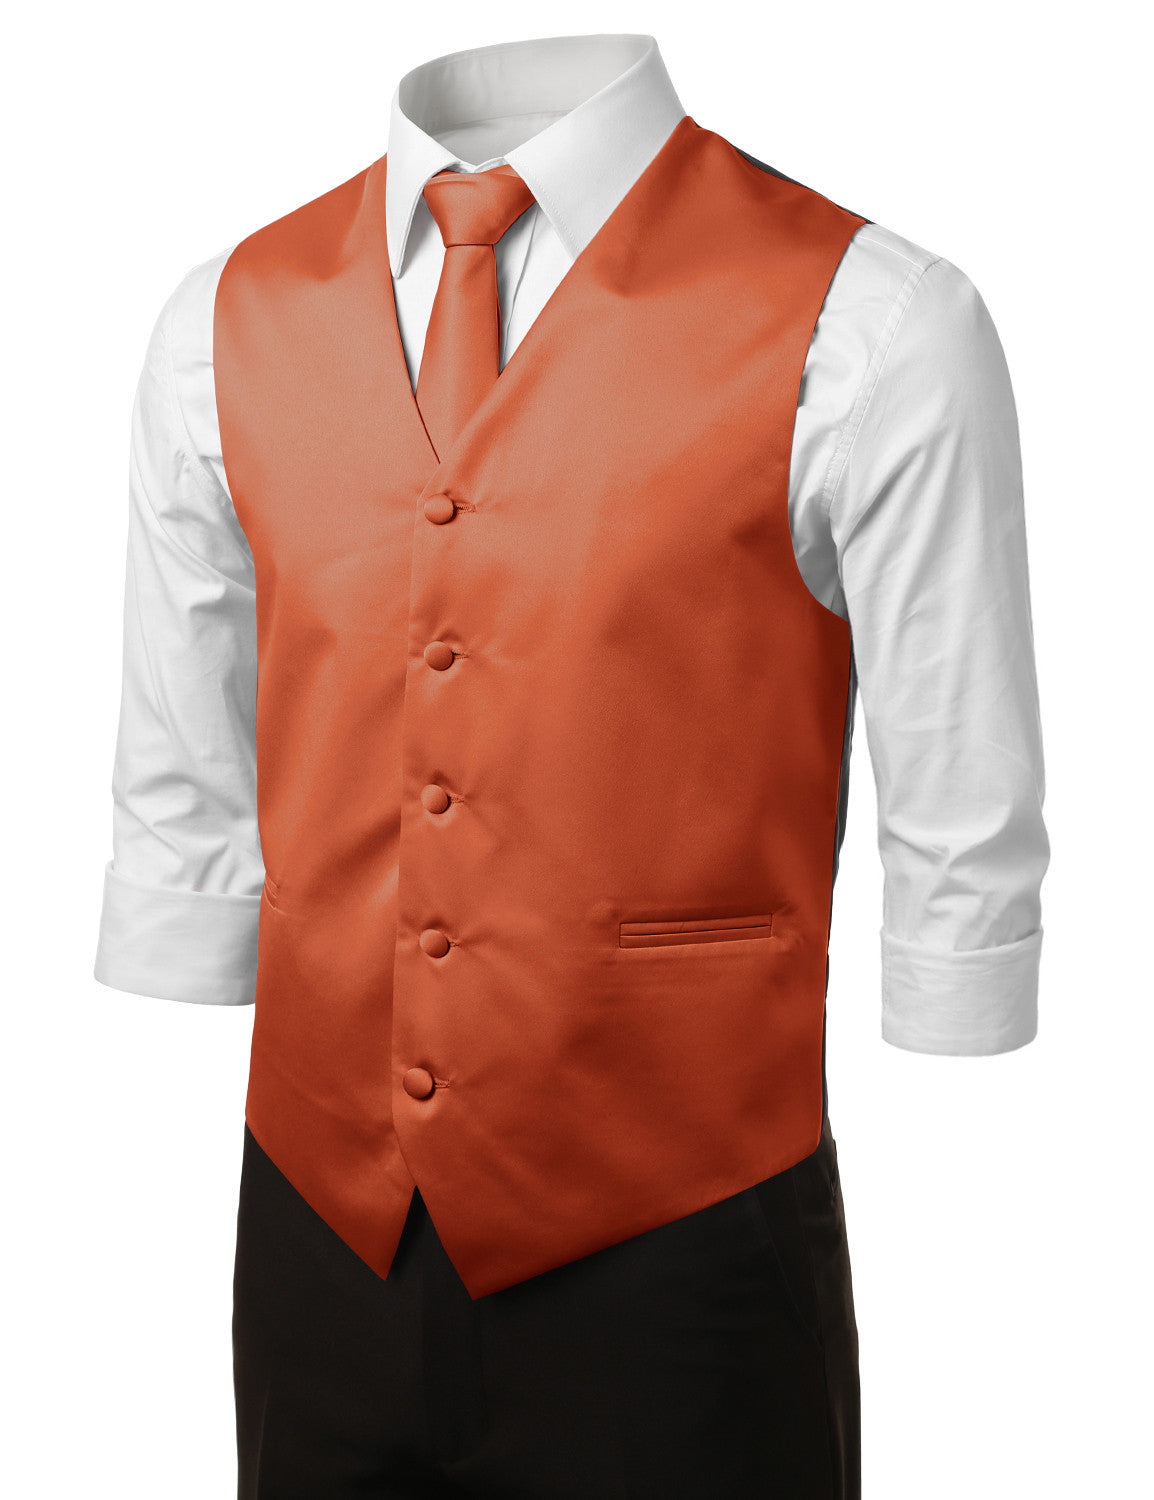 ORANGE15 Formal Tuxedo 3 Piece Vest Set (Vest, Necktie, Pocket Square)- MONDAYSUIT